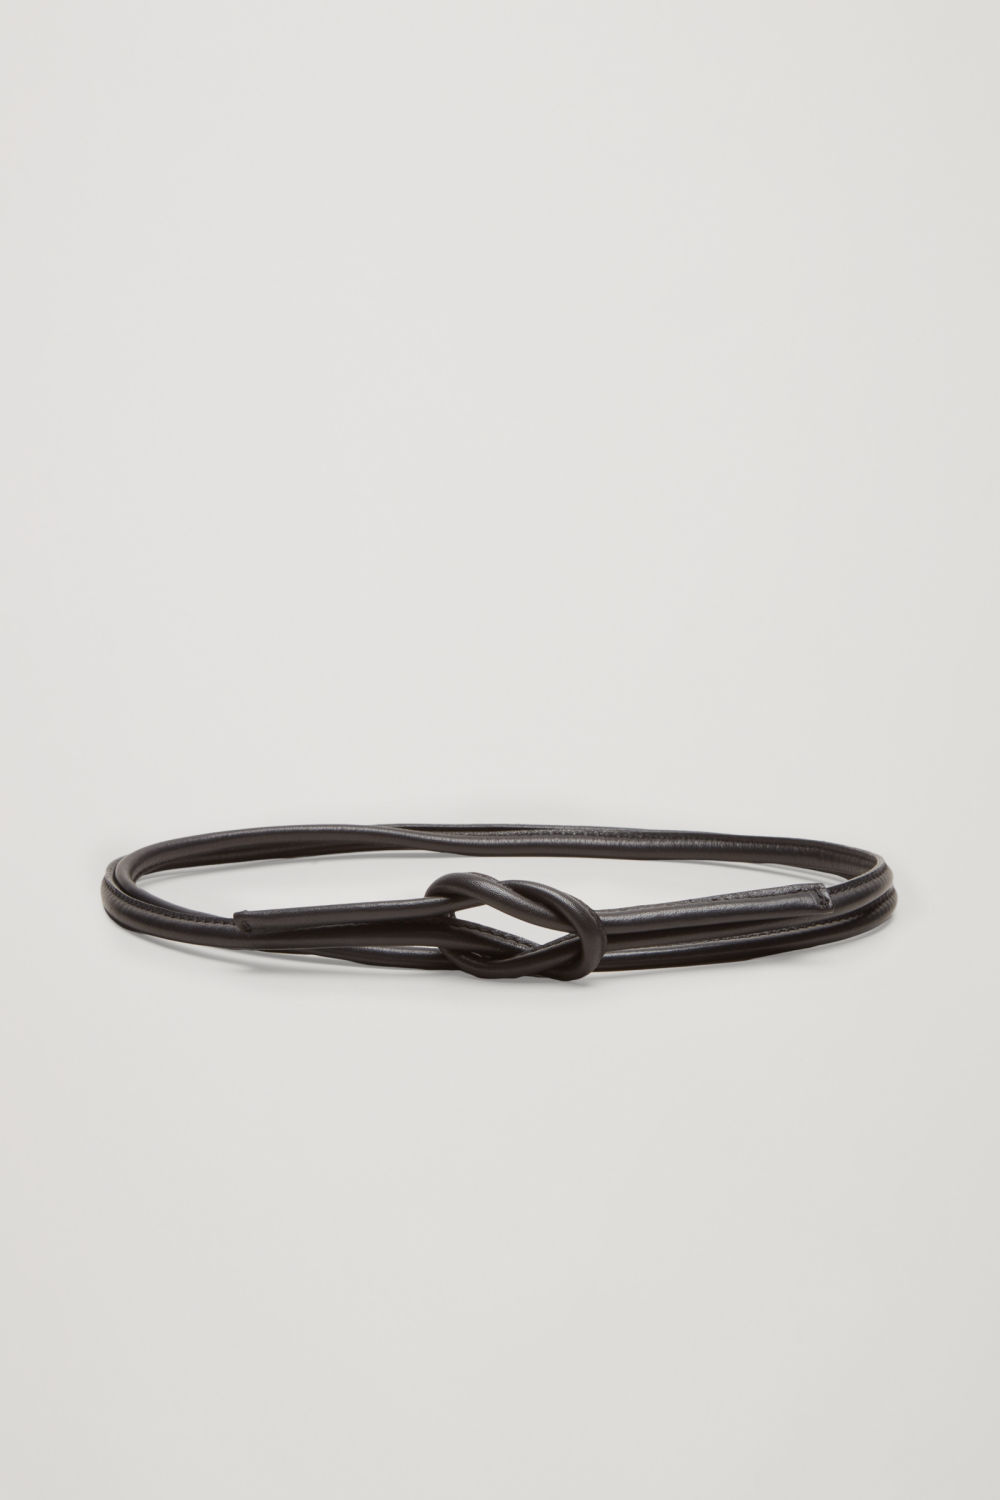 코스 COS TIE-UP LEATHER BELT,Black